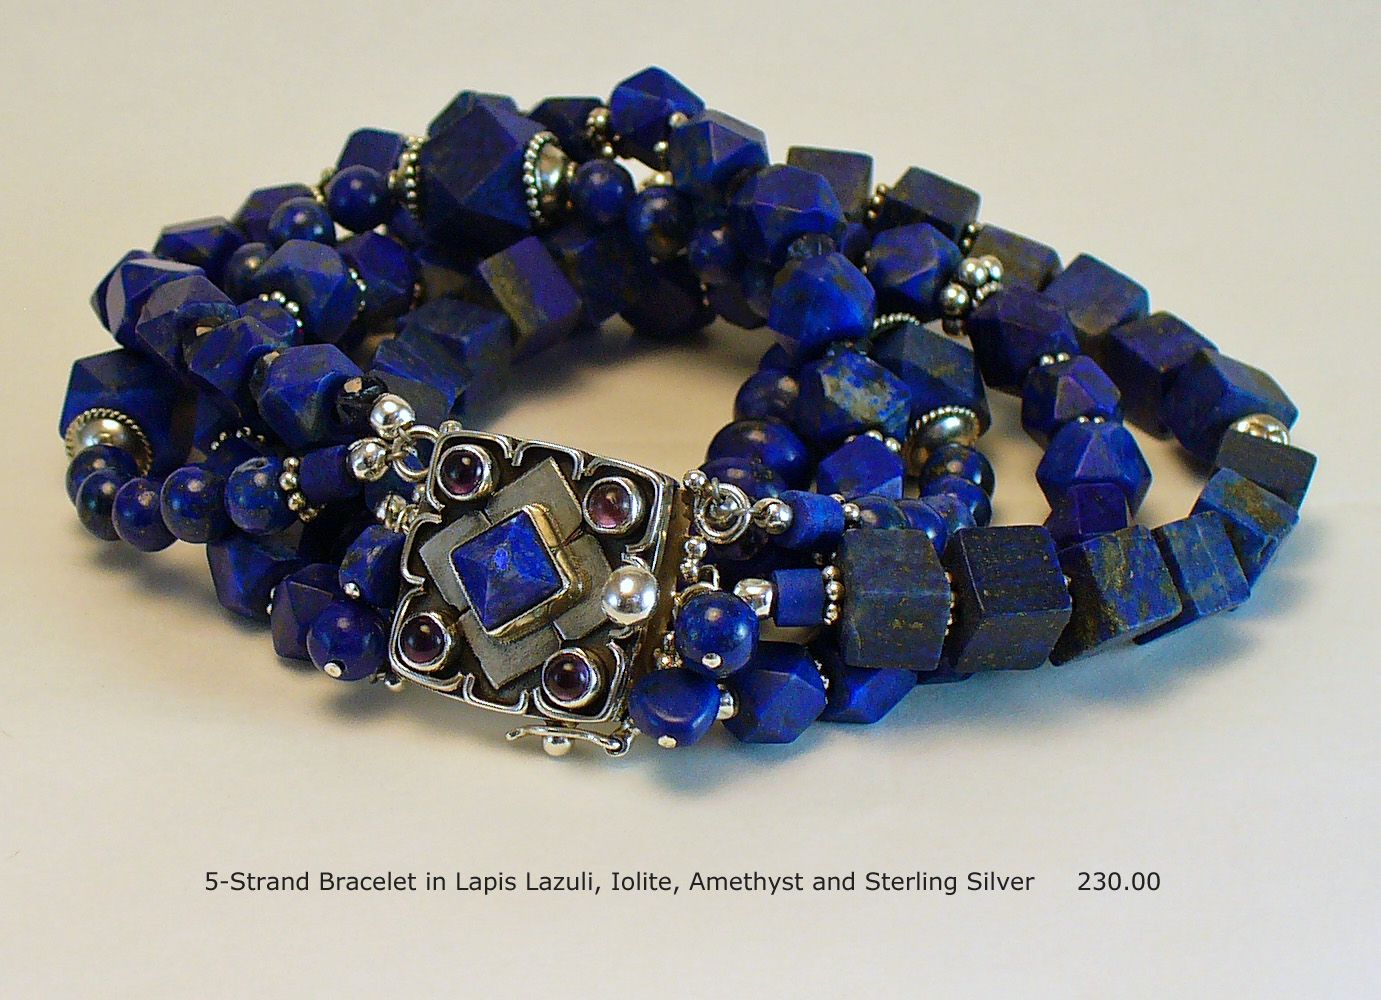 5-Strand Bracelet in Afghani Lapis Lazuli, Iolite, Amethyst, 14K Gold and Sterling Silver  One of a Kind and Handmade by A. Denise Rollings-Martin  www.lilygirlart.com  $230.00